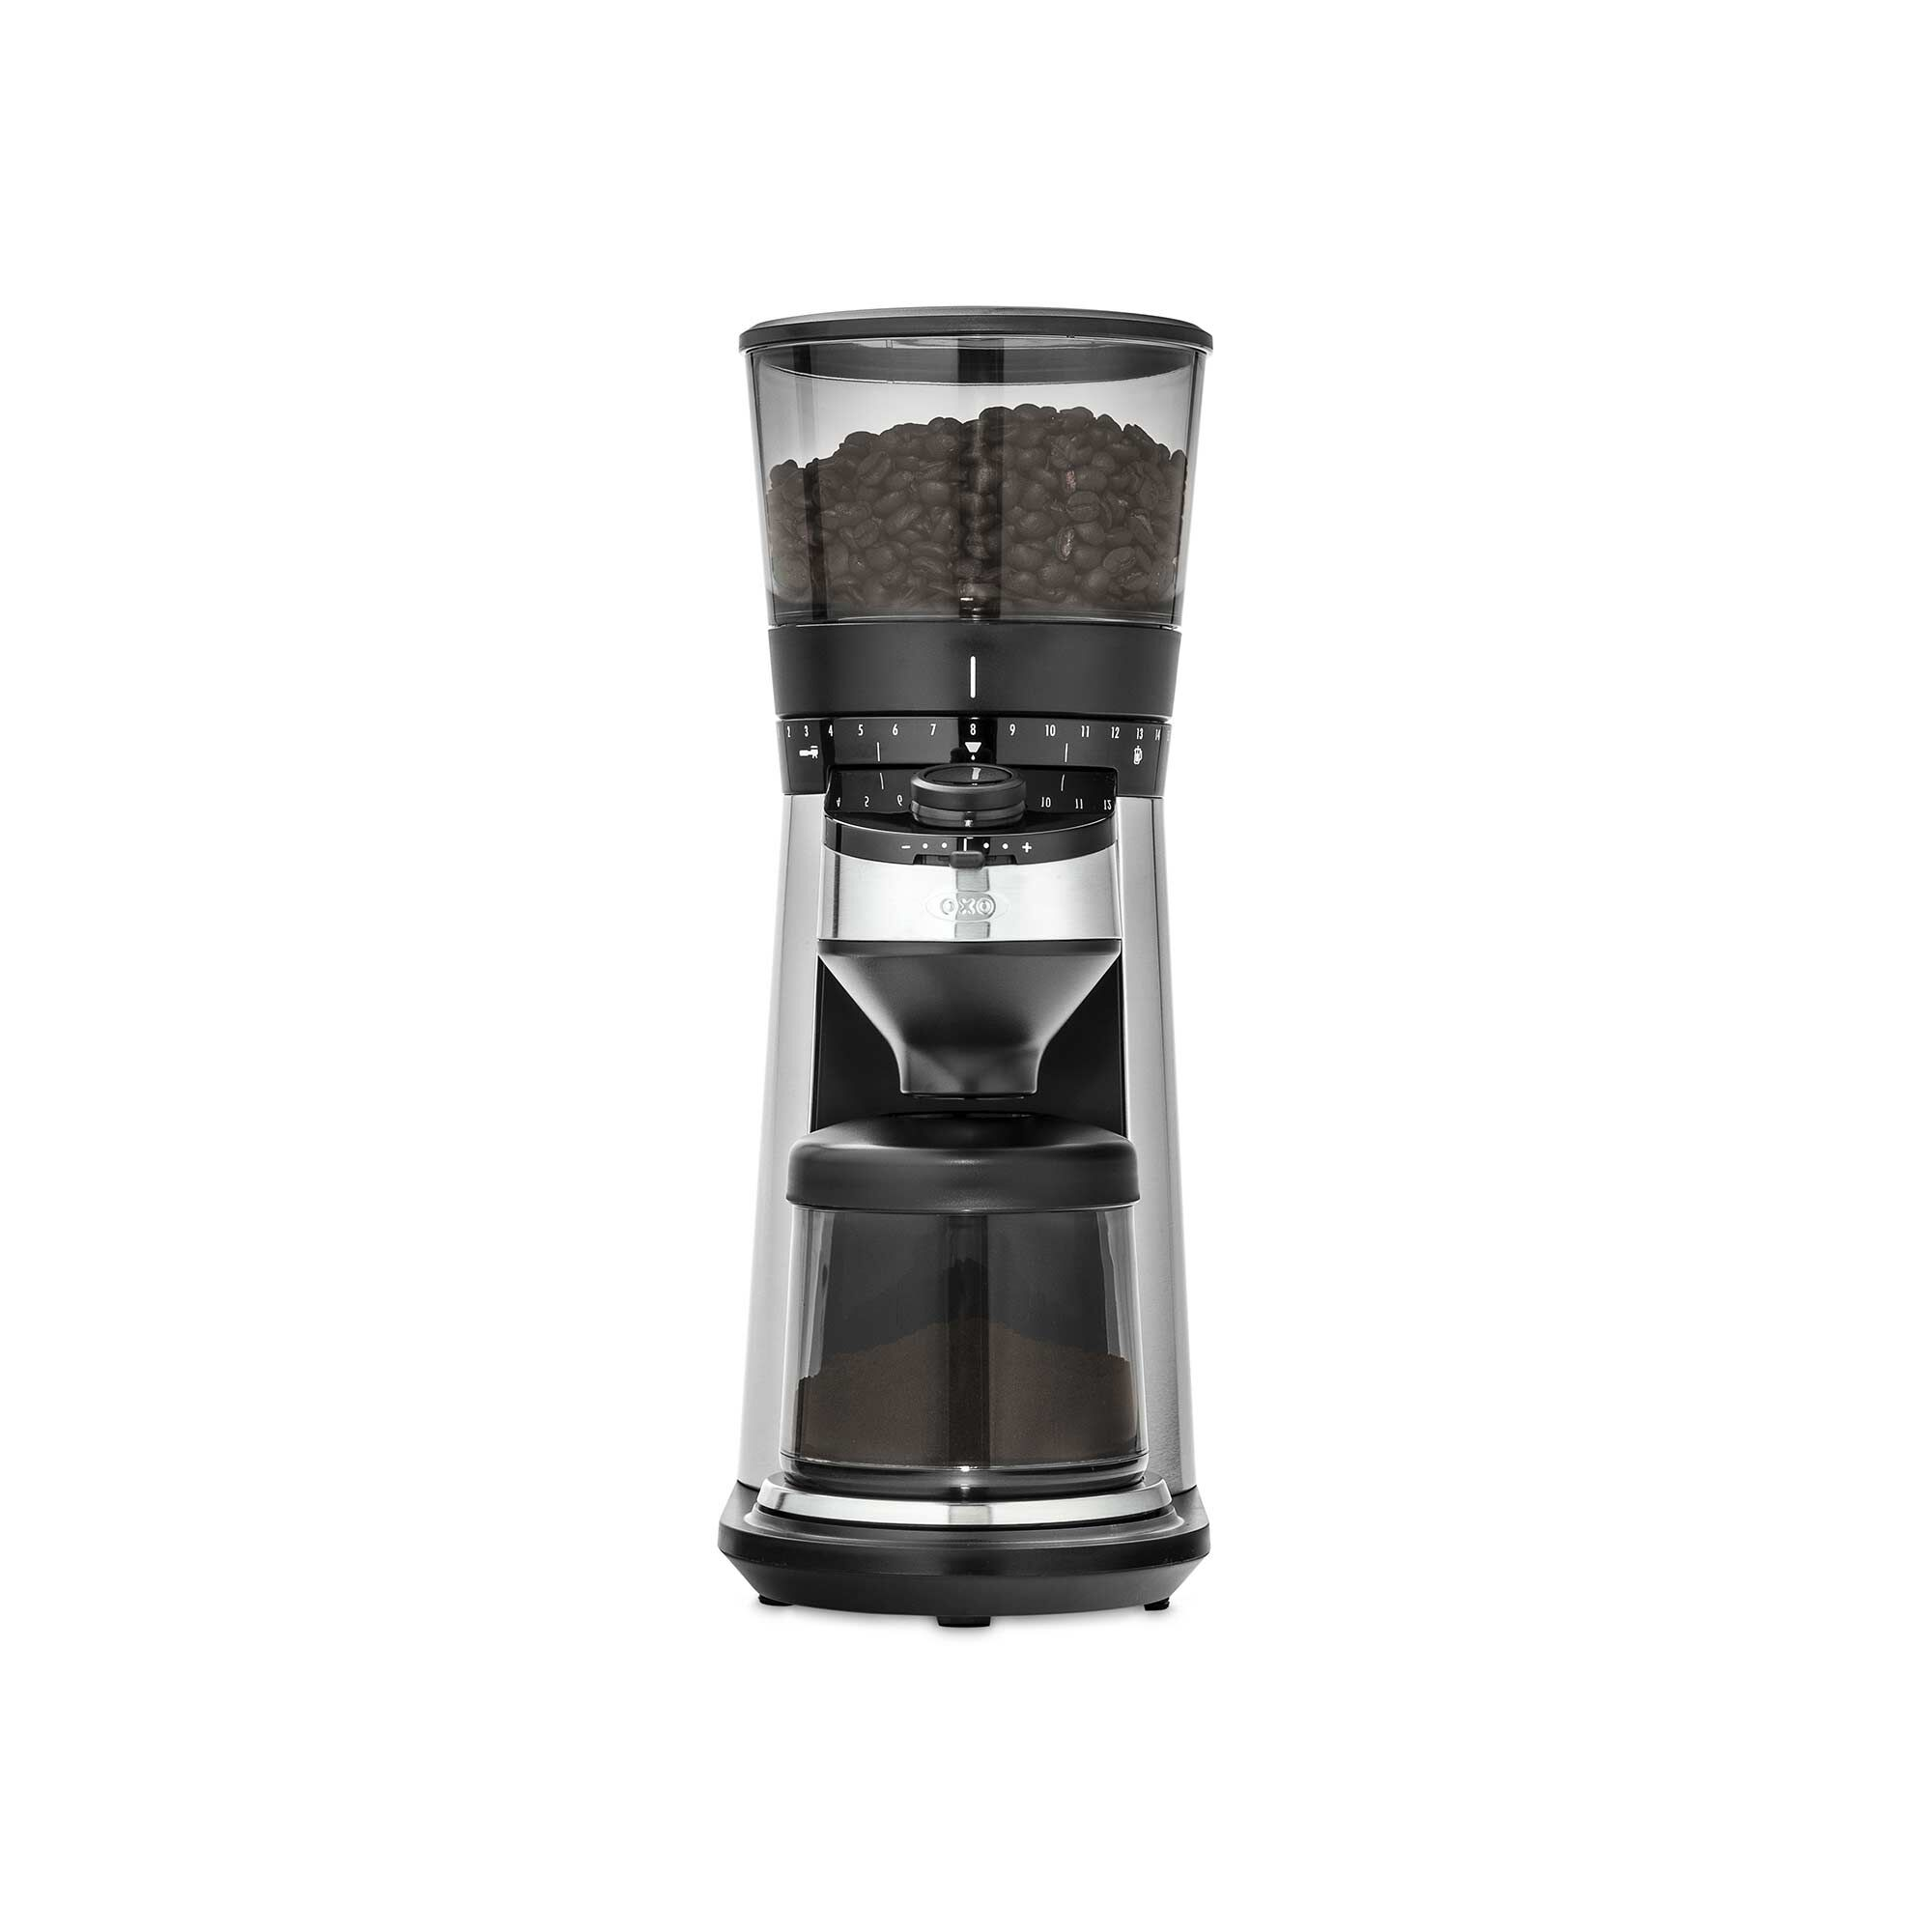 OXO Conical Burr Coffee Grinder front view